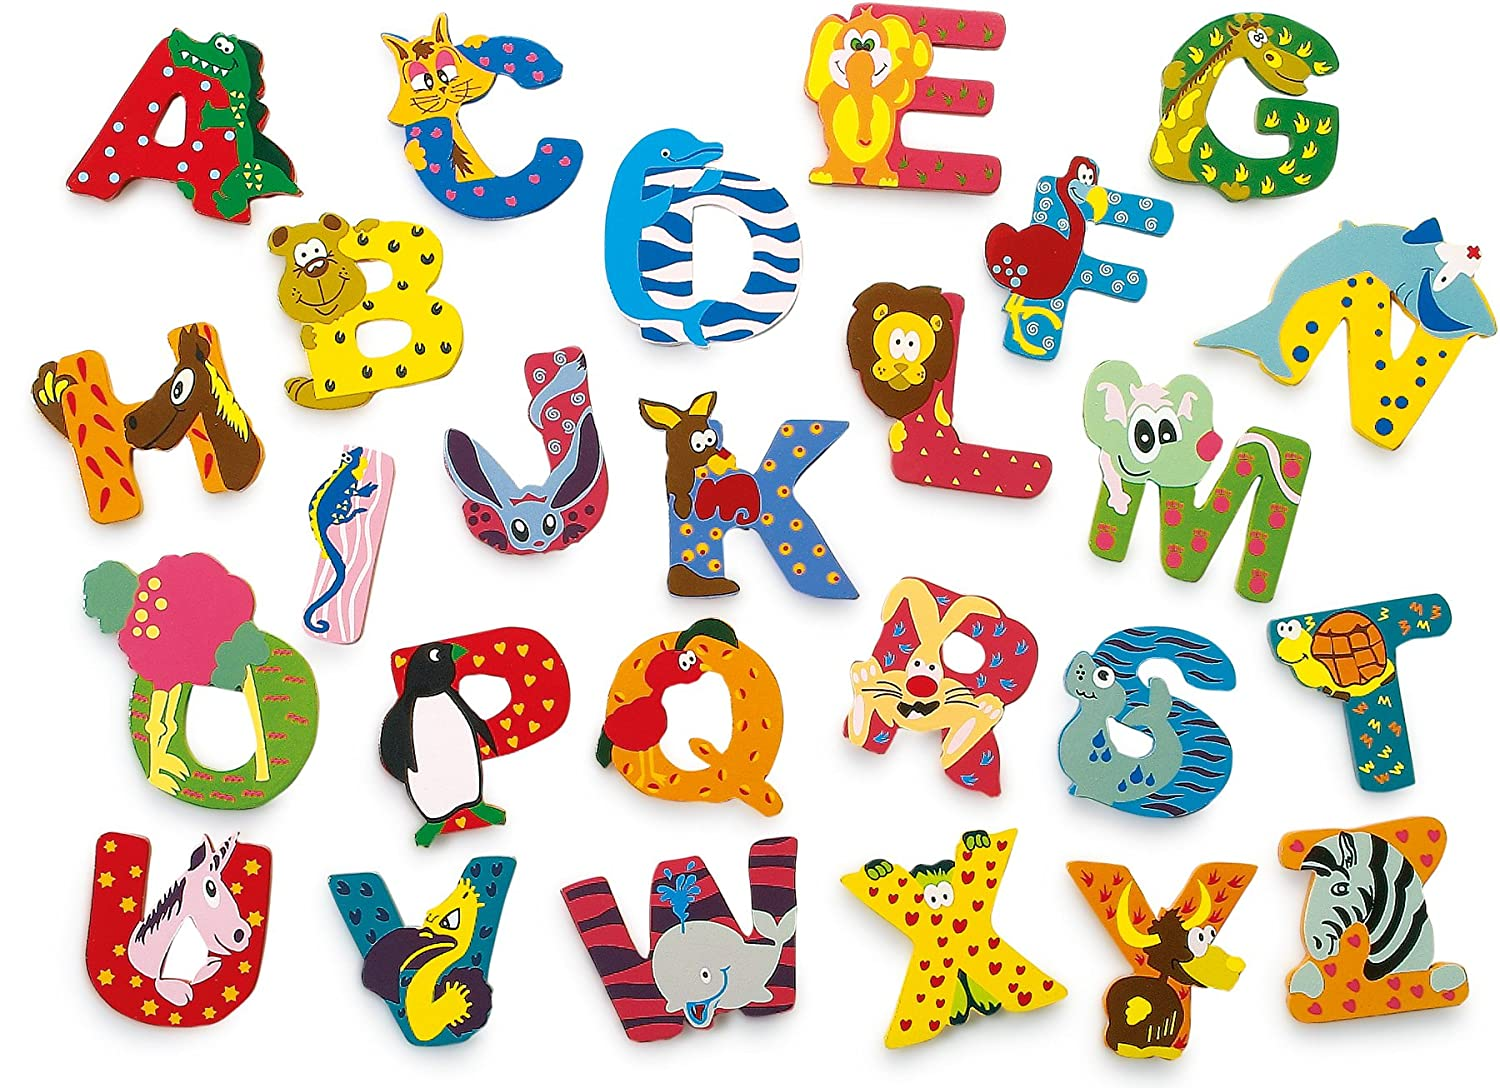 W for playing for children and babies INDIGOS UG kindergarten school Wood letter Motif animals for the childrens room crafting and collecting